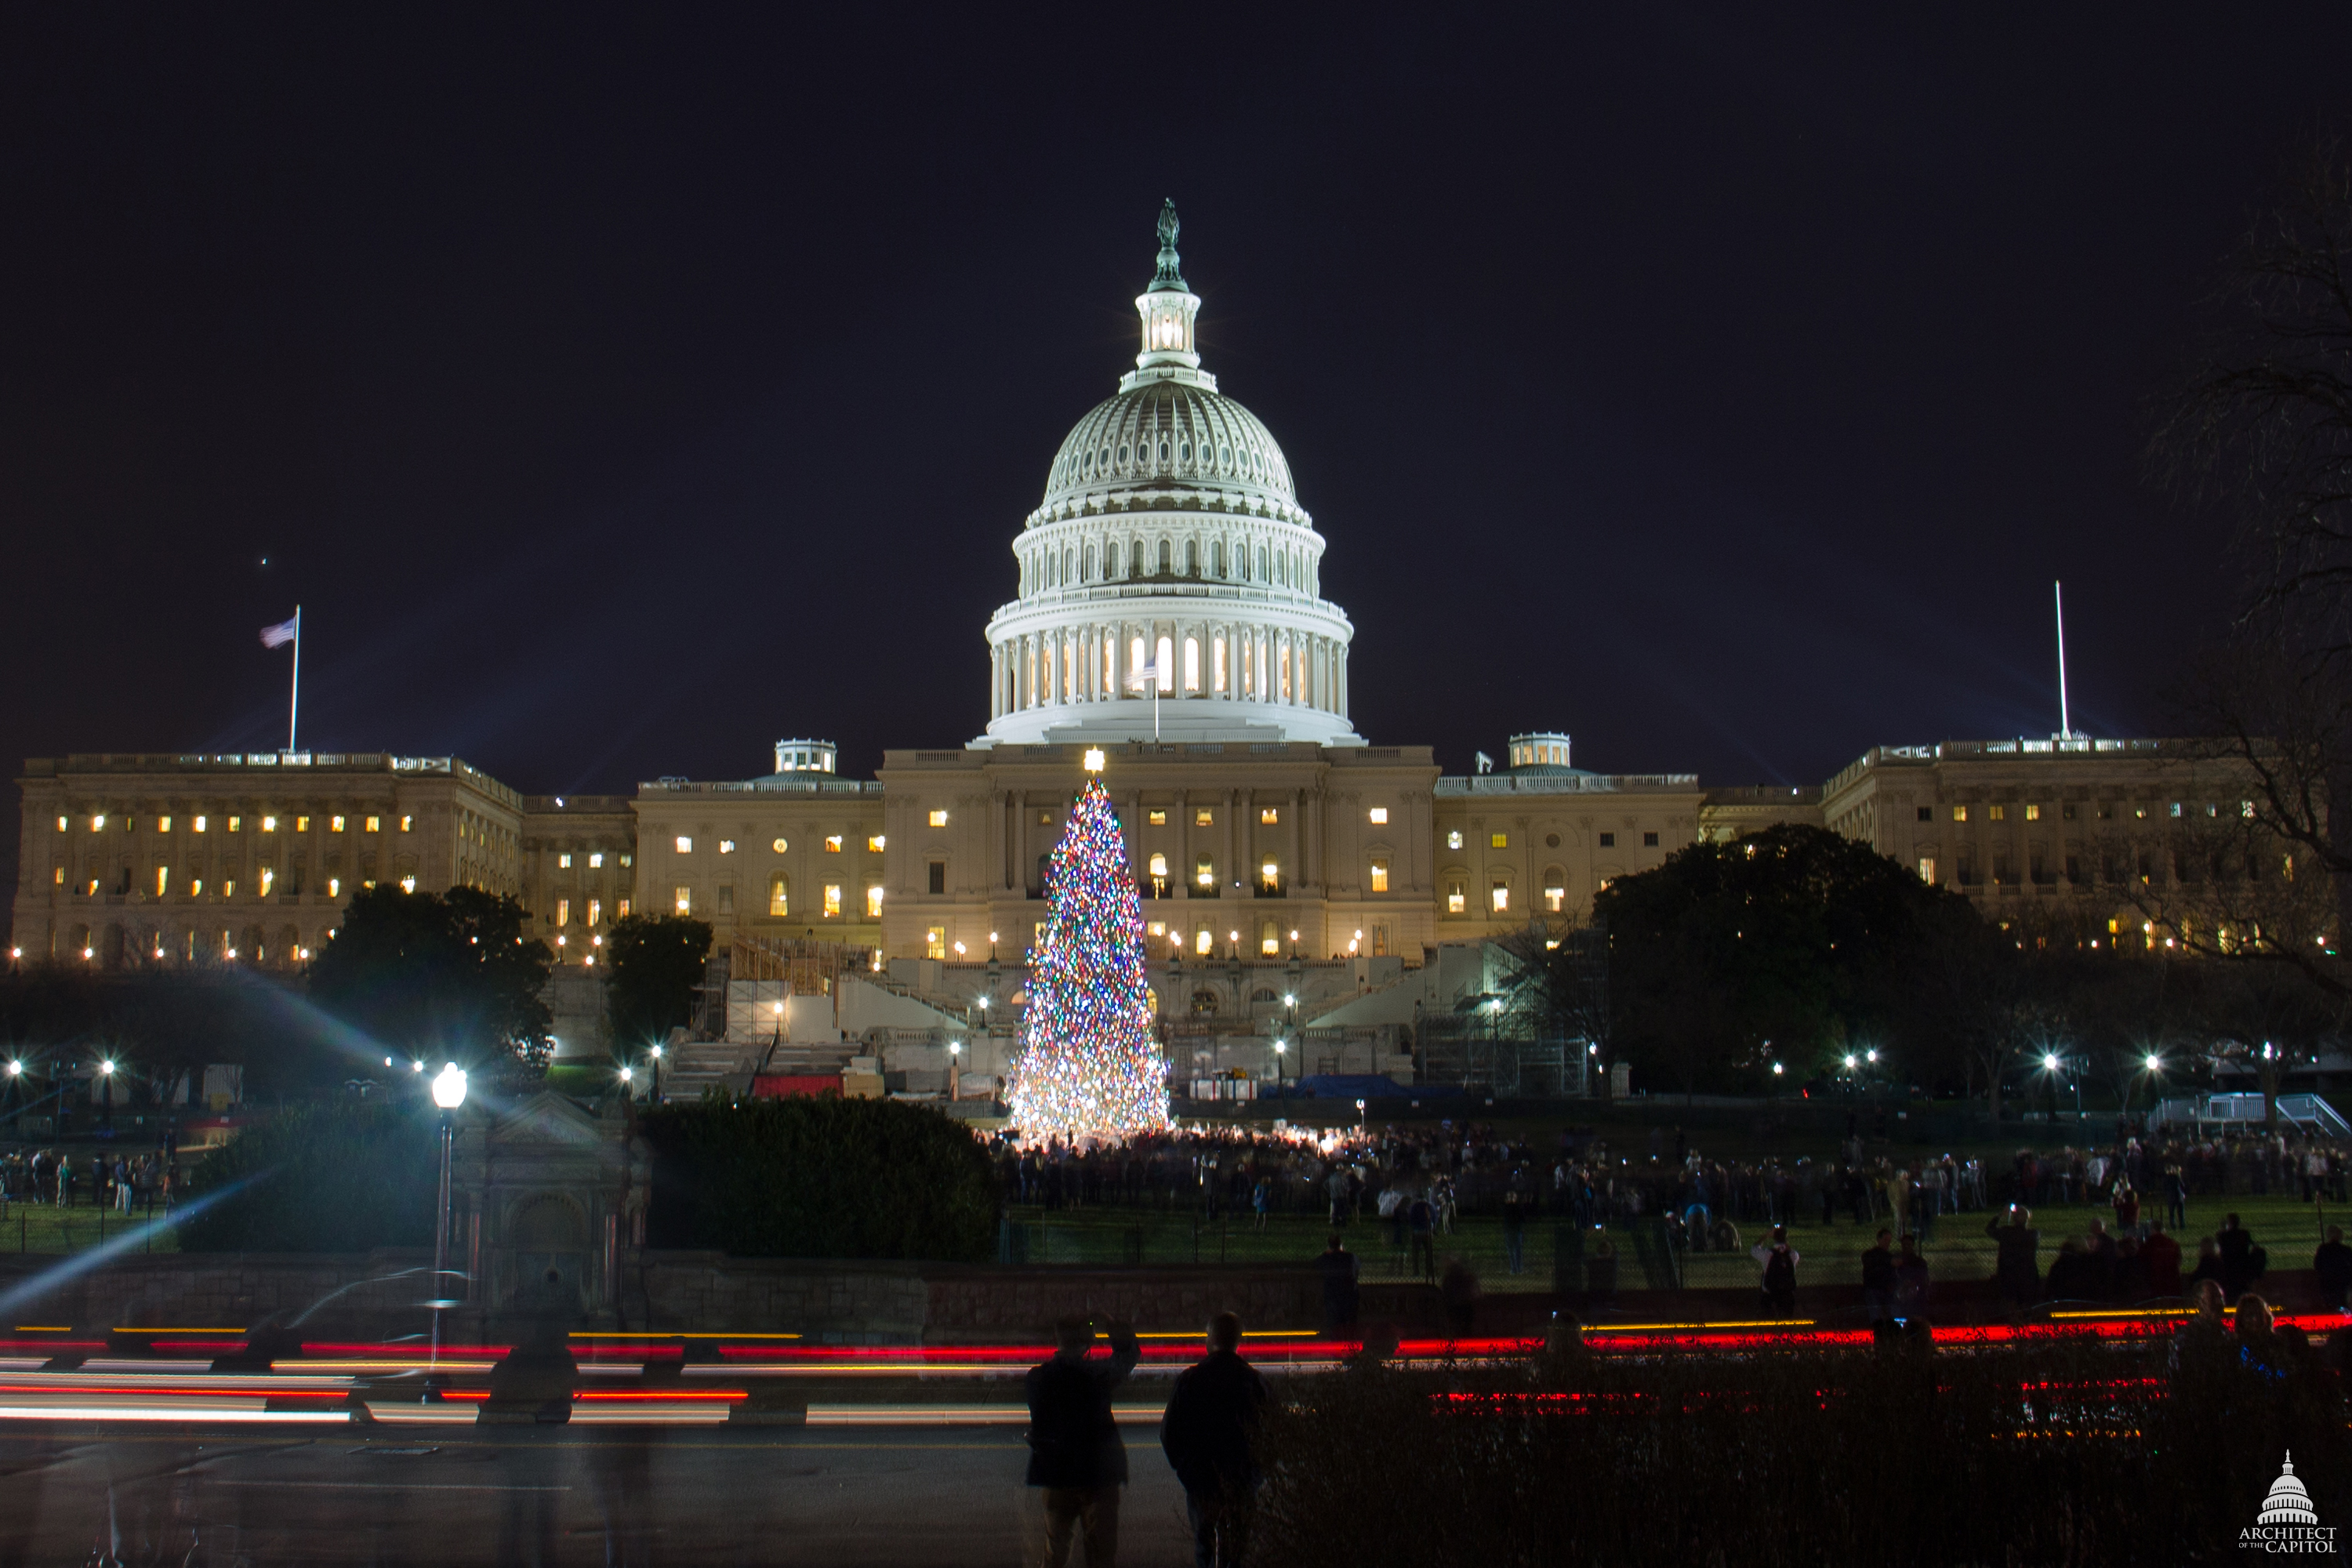 Capitol Christmas Tree.Capitol Christmas Tree Architect Of The Capitol